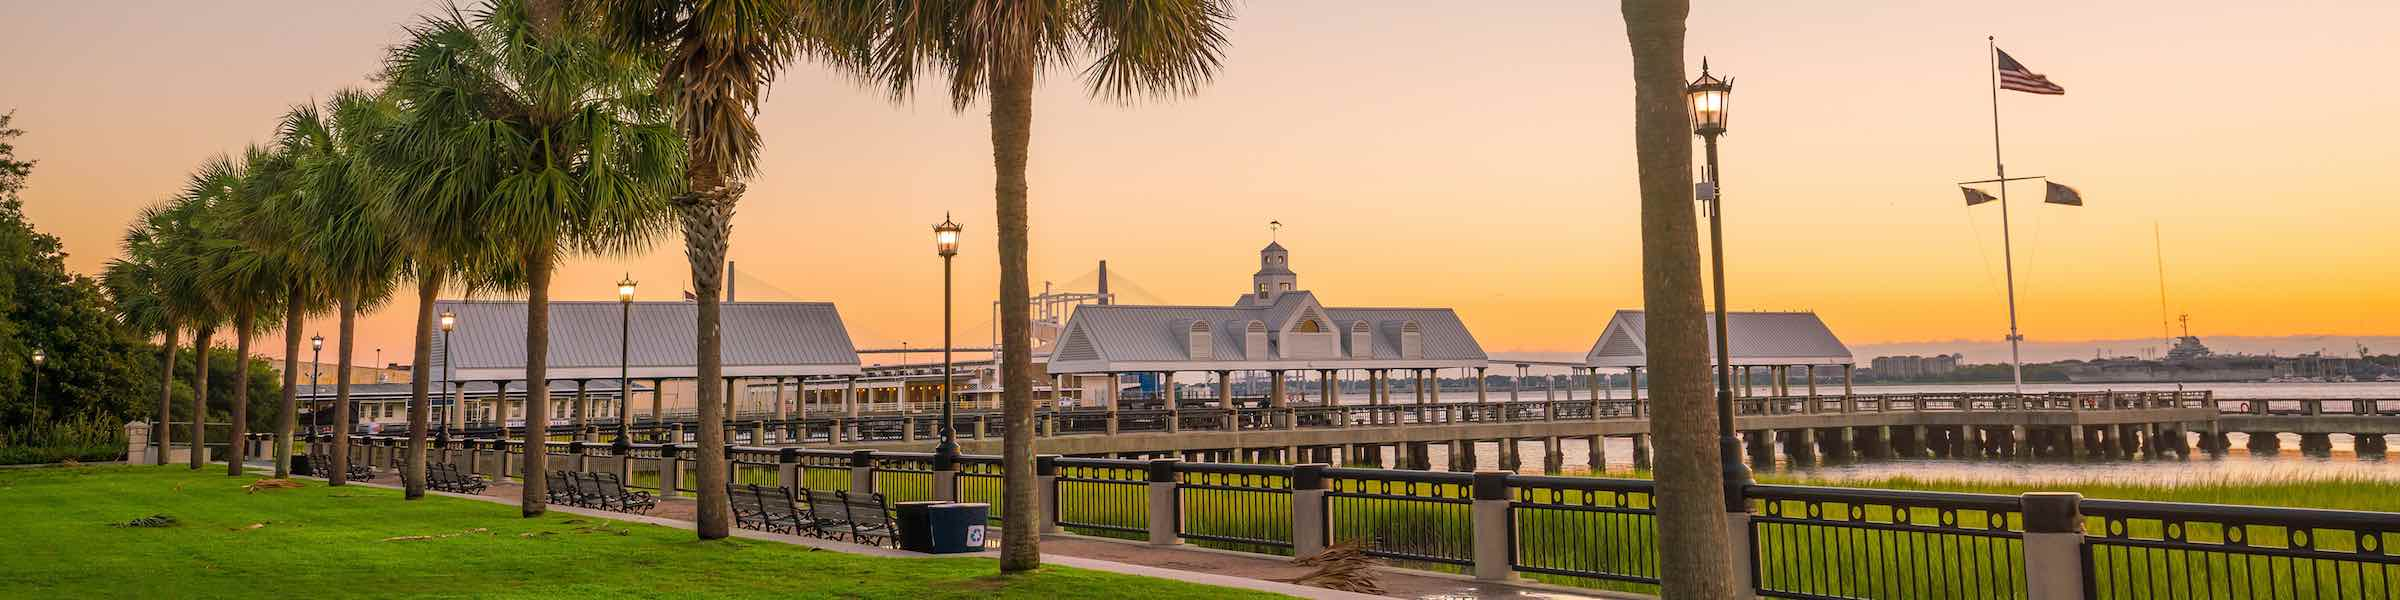 Sunset view of Charleston's Waterfront Park.